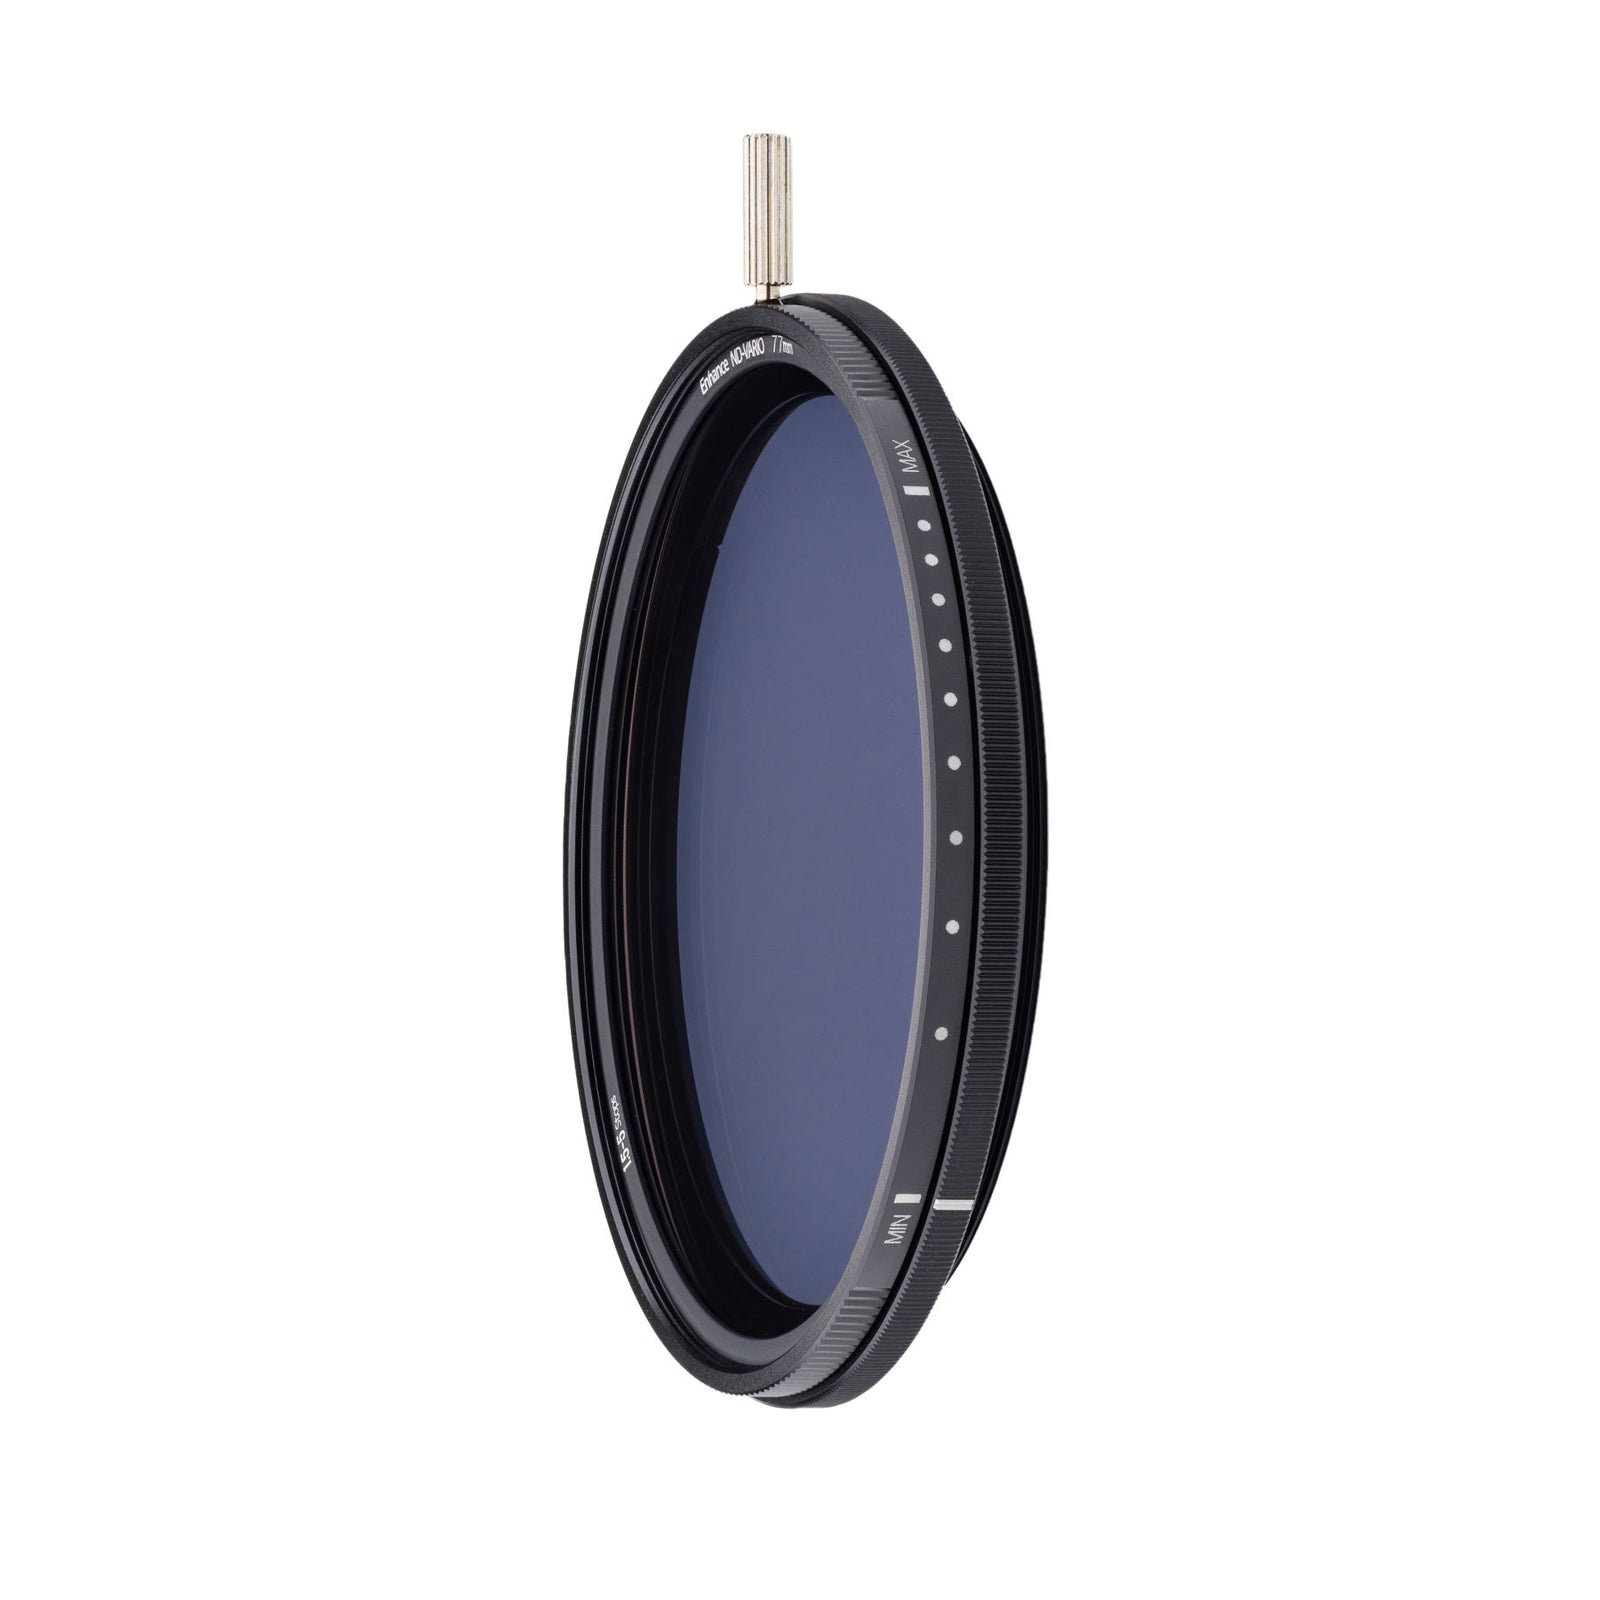 Neutral-Density-Filter-Landscape-Outdoor-Camera-Long-Exposure-Filter-Nisi-Filters-Variable-ND-Neutral-Density-Filter-1.5-5-Stops-Nisi-Filters-Australia